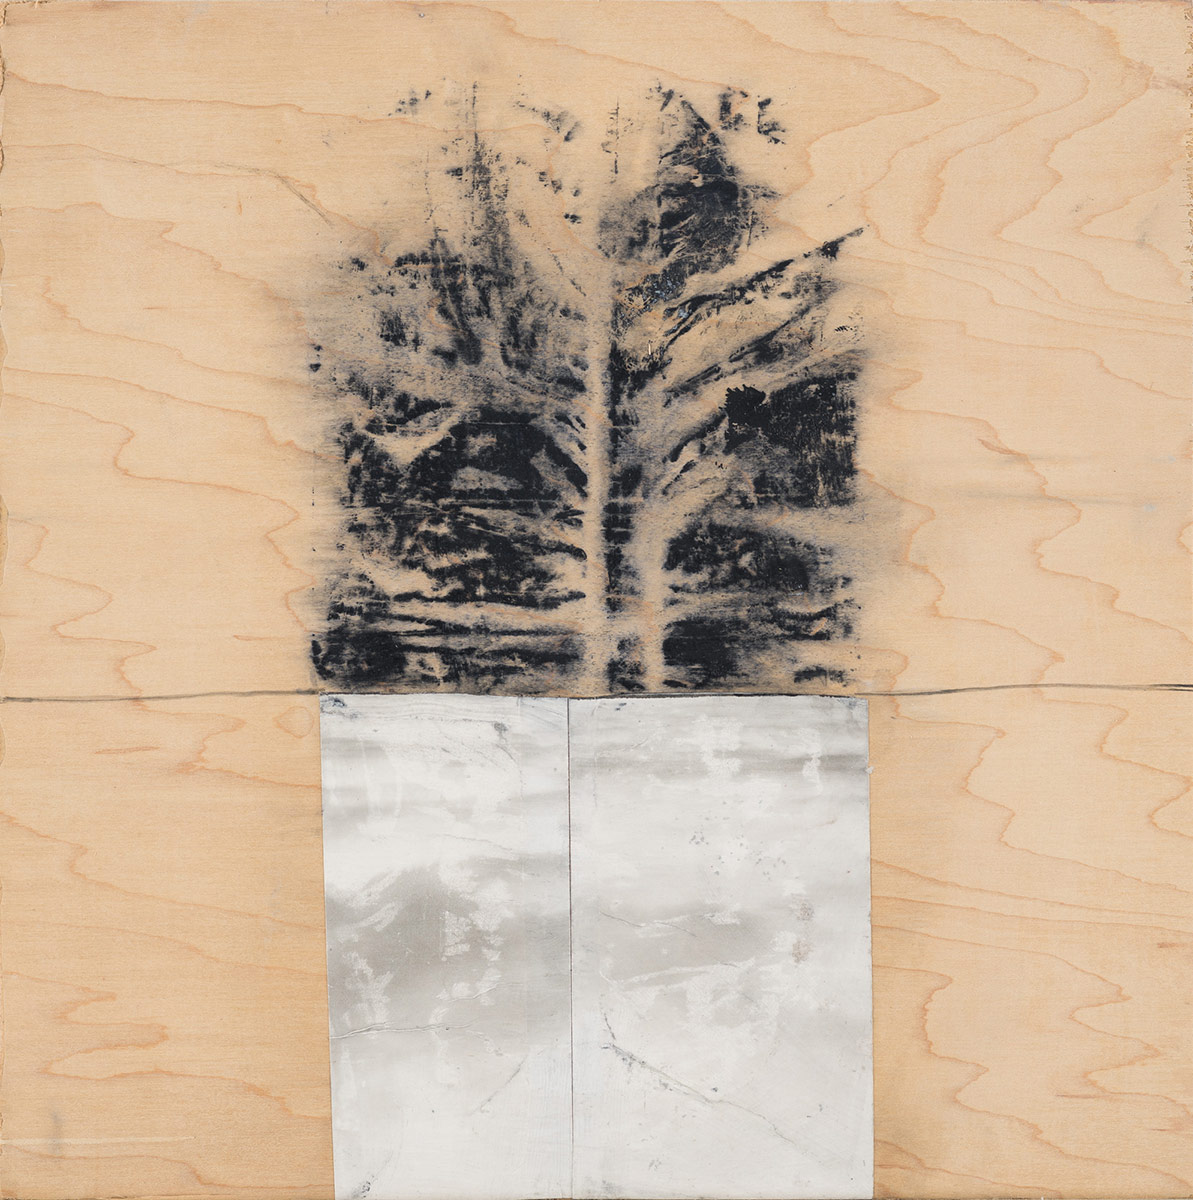 """Landscape (black and white),  2015. Acrylic, acrylic polymer and graphite on wood panel. 12""""x12"""""""